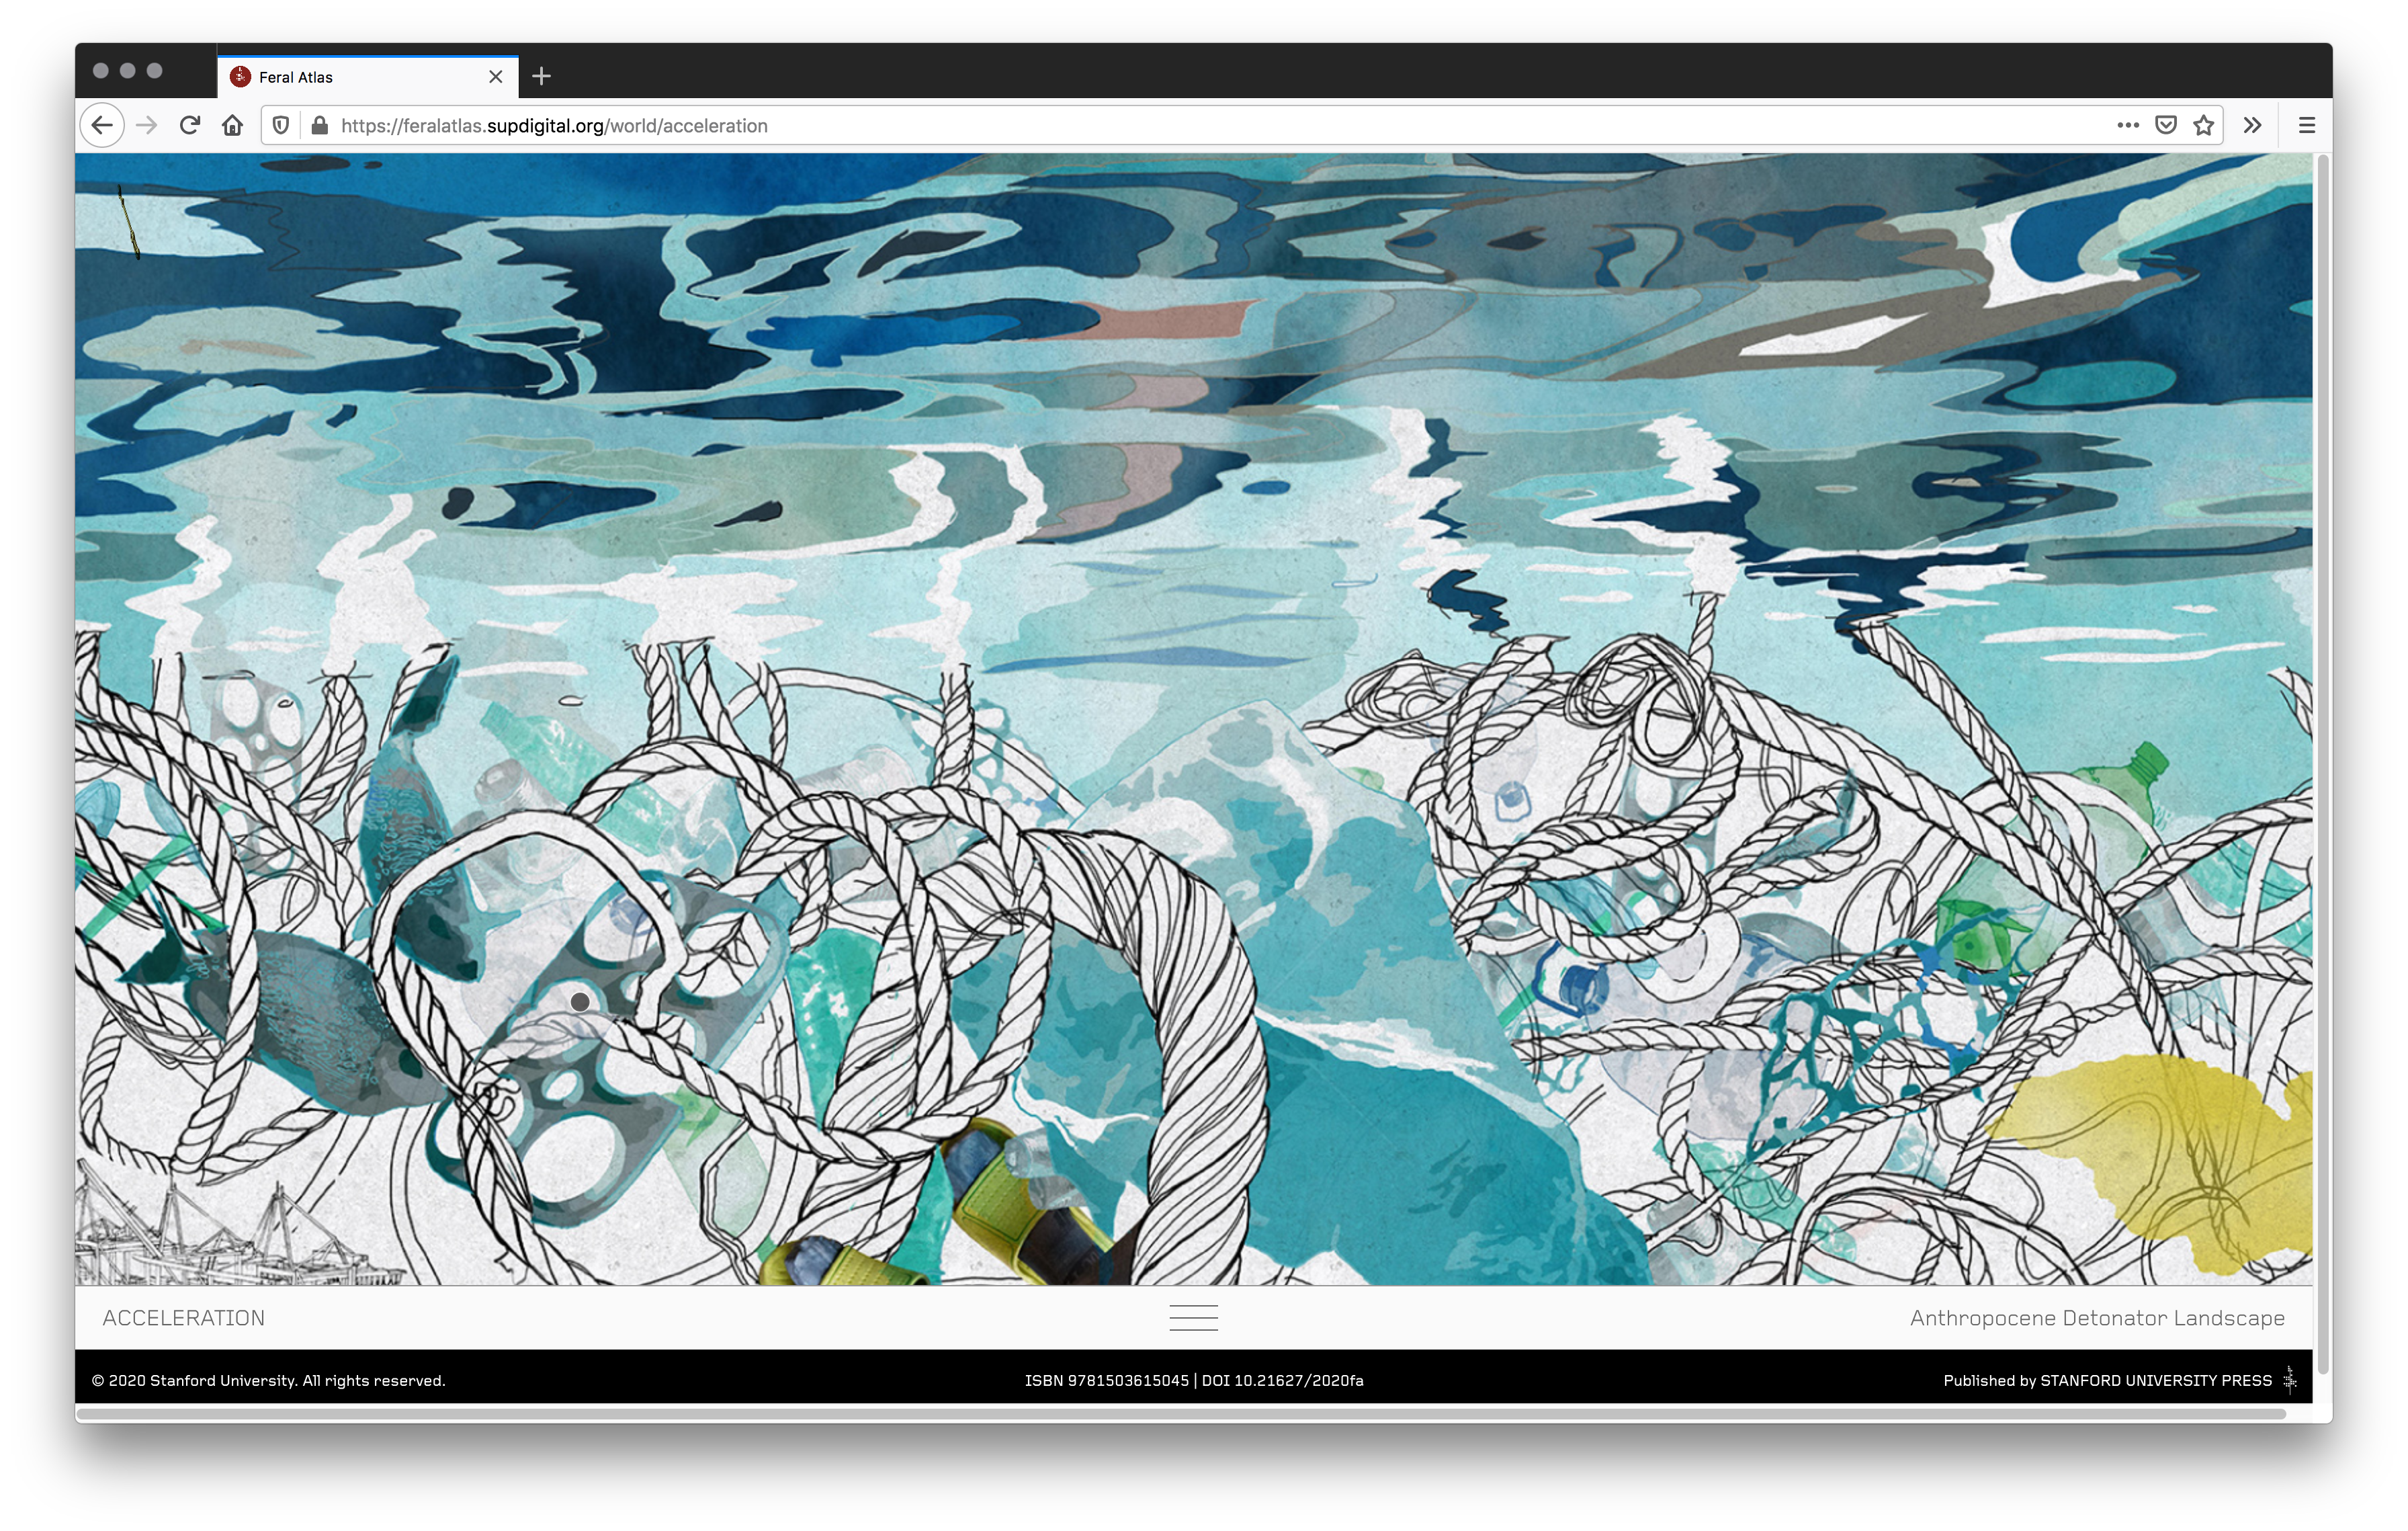 This screenshot of Feral Atlas' Anthropocene Detonator landscape shows art of marine trash. Drawings of rope and plastic are engulfed with different shades of blue paint as fish swim by.